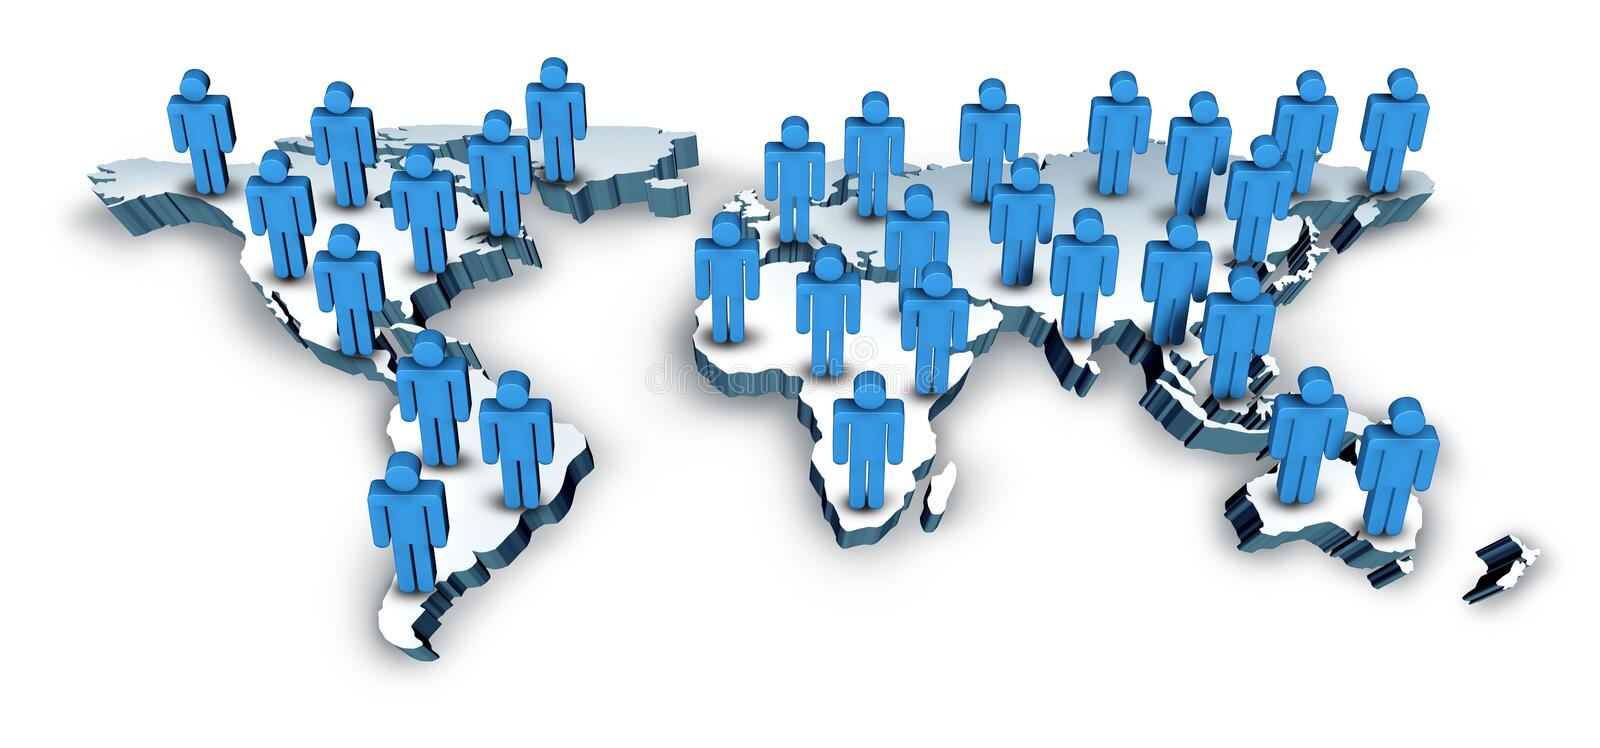 Global Communications With a World Map royalty free illustration